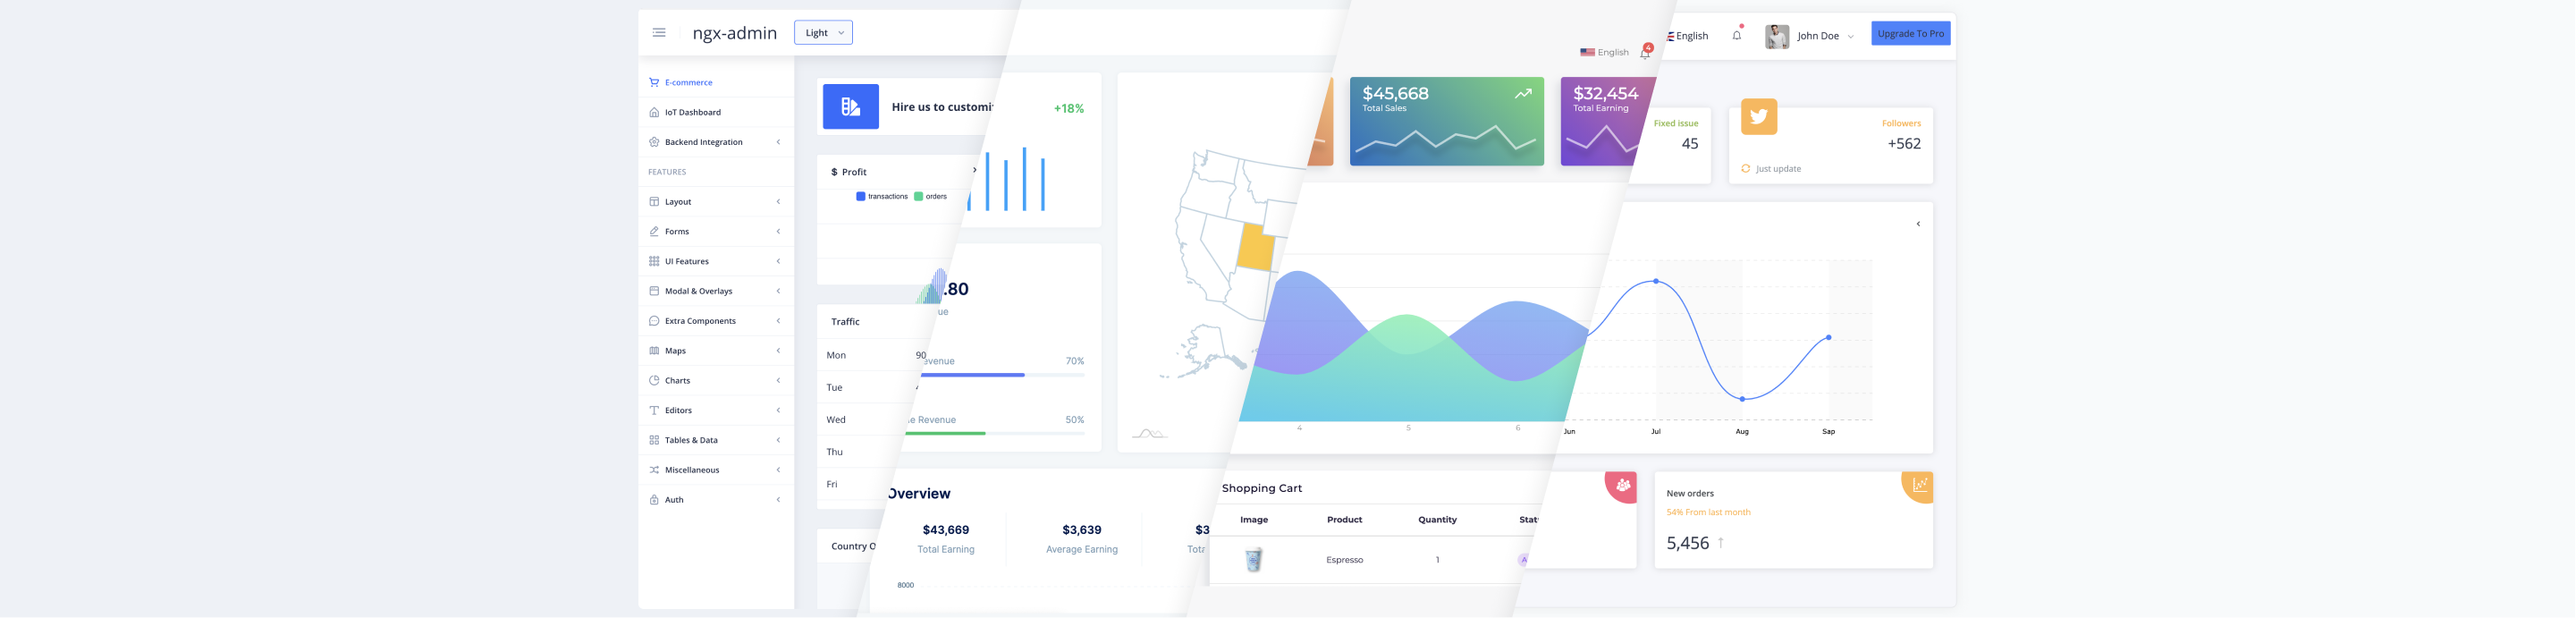 Ultimate Guide: Top 44 Angular and Bootstrap Admin Dashboard Templates 2021